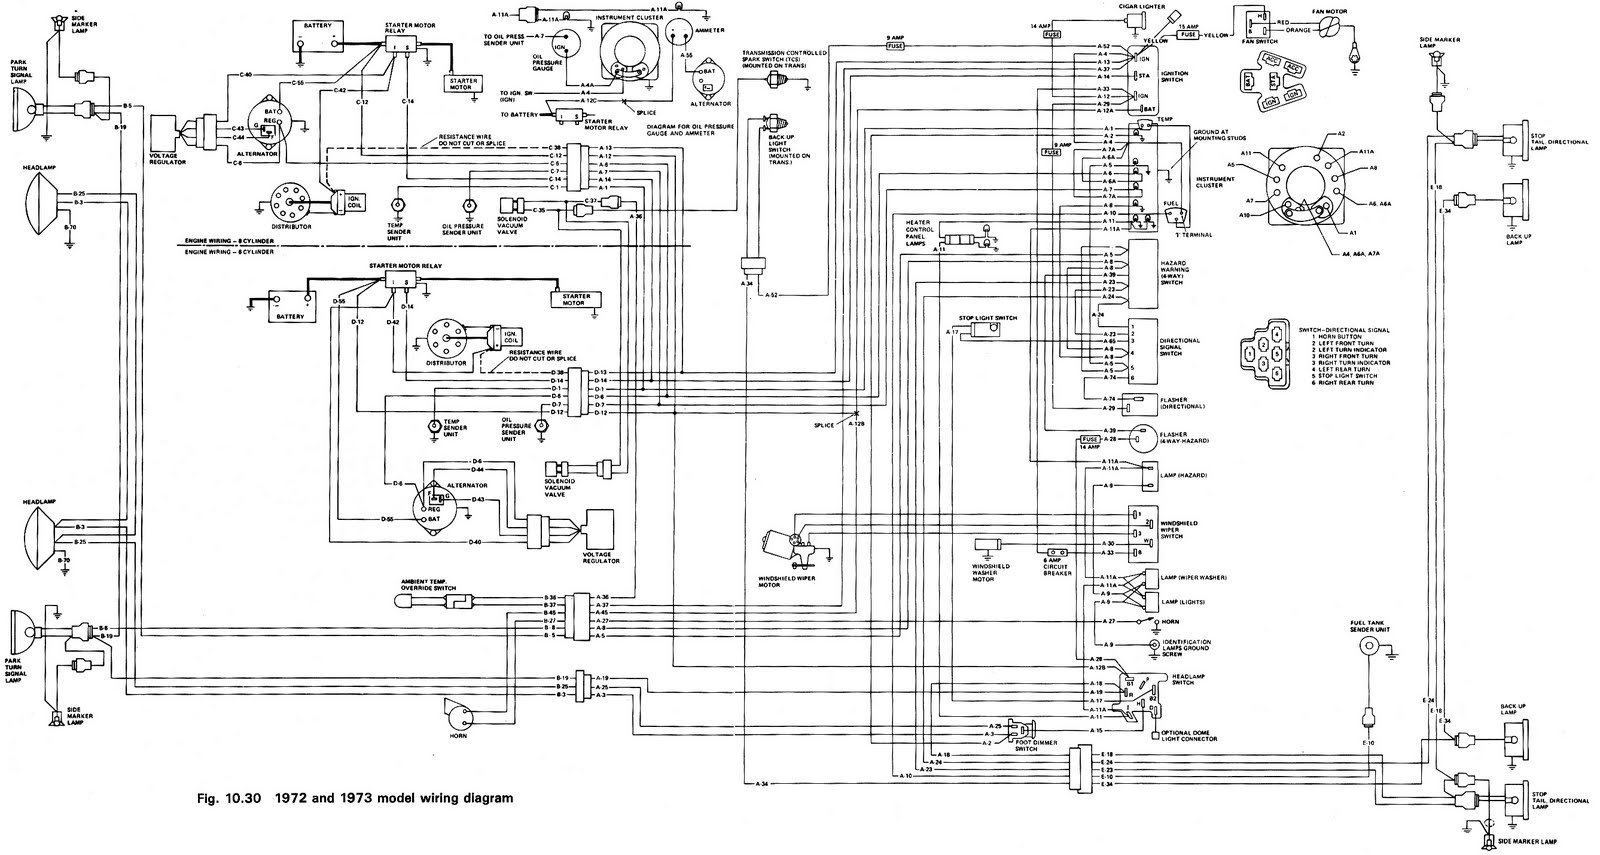 1969 Cj5 Wiring Diagram